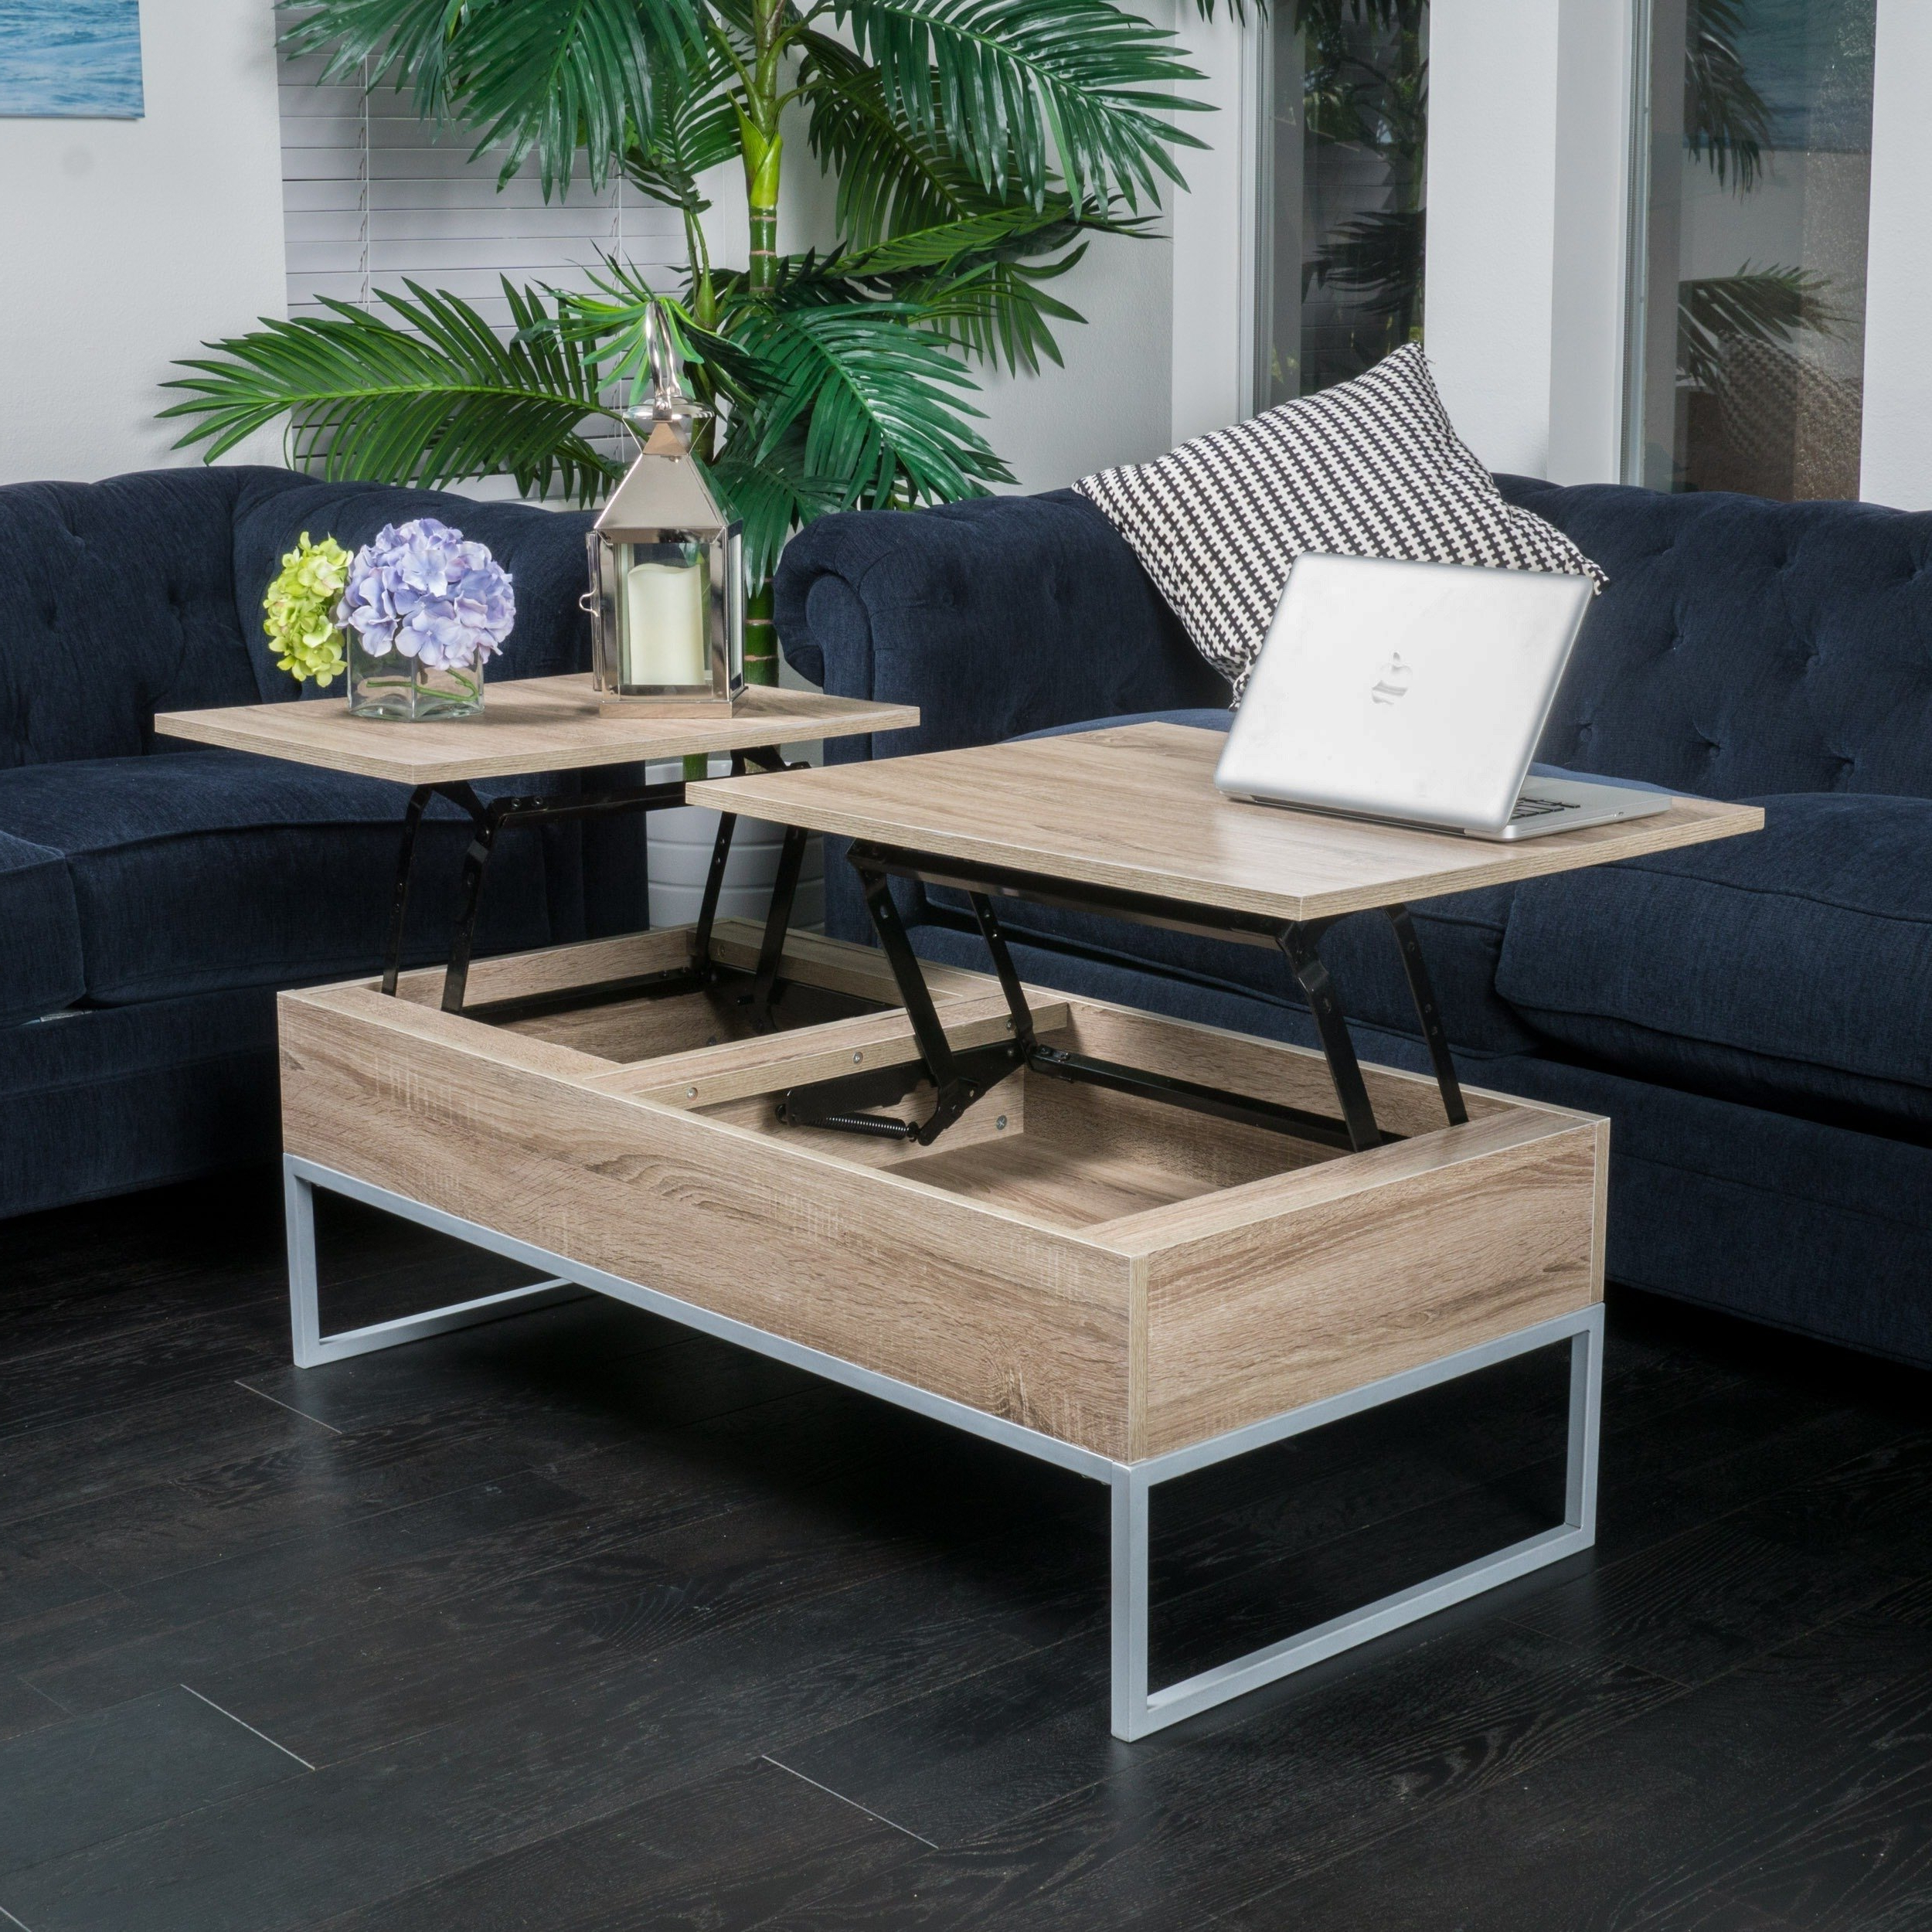 Preferred Grant Lift Top Cocktail Tables With Casters Throughout Shop Christopher Knight Home Lift Top Wood Storage Coffee Table – On (View 7 of 20)